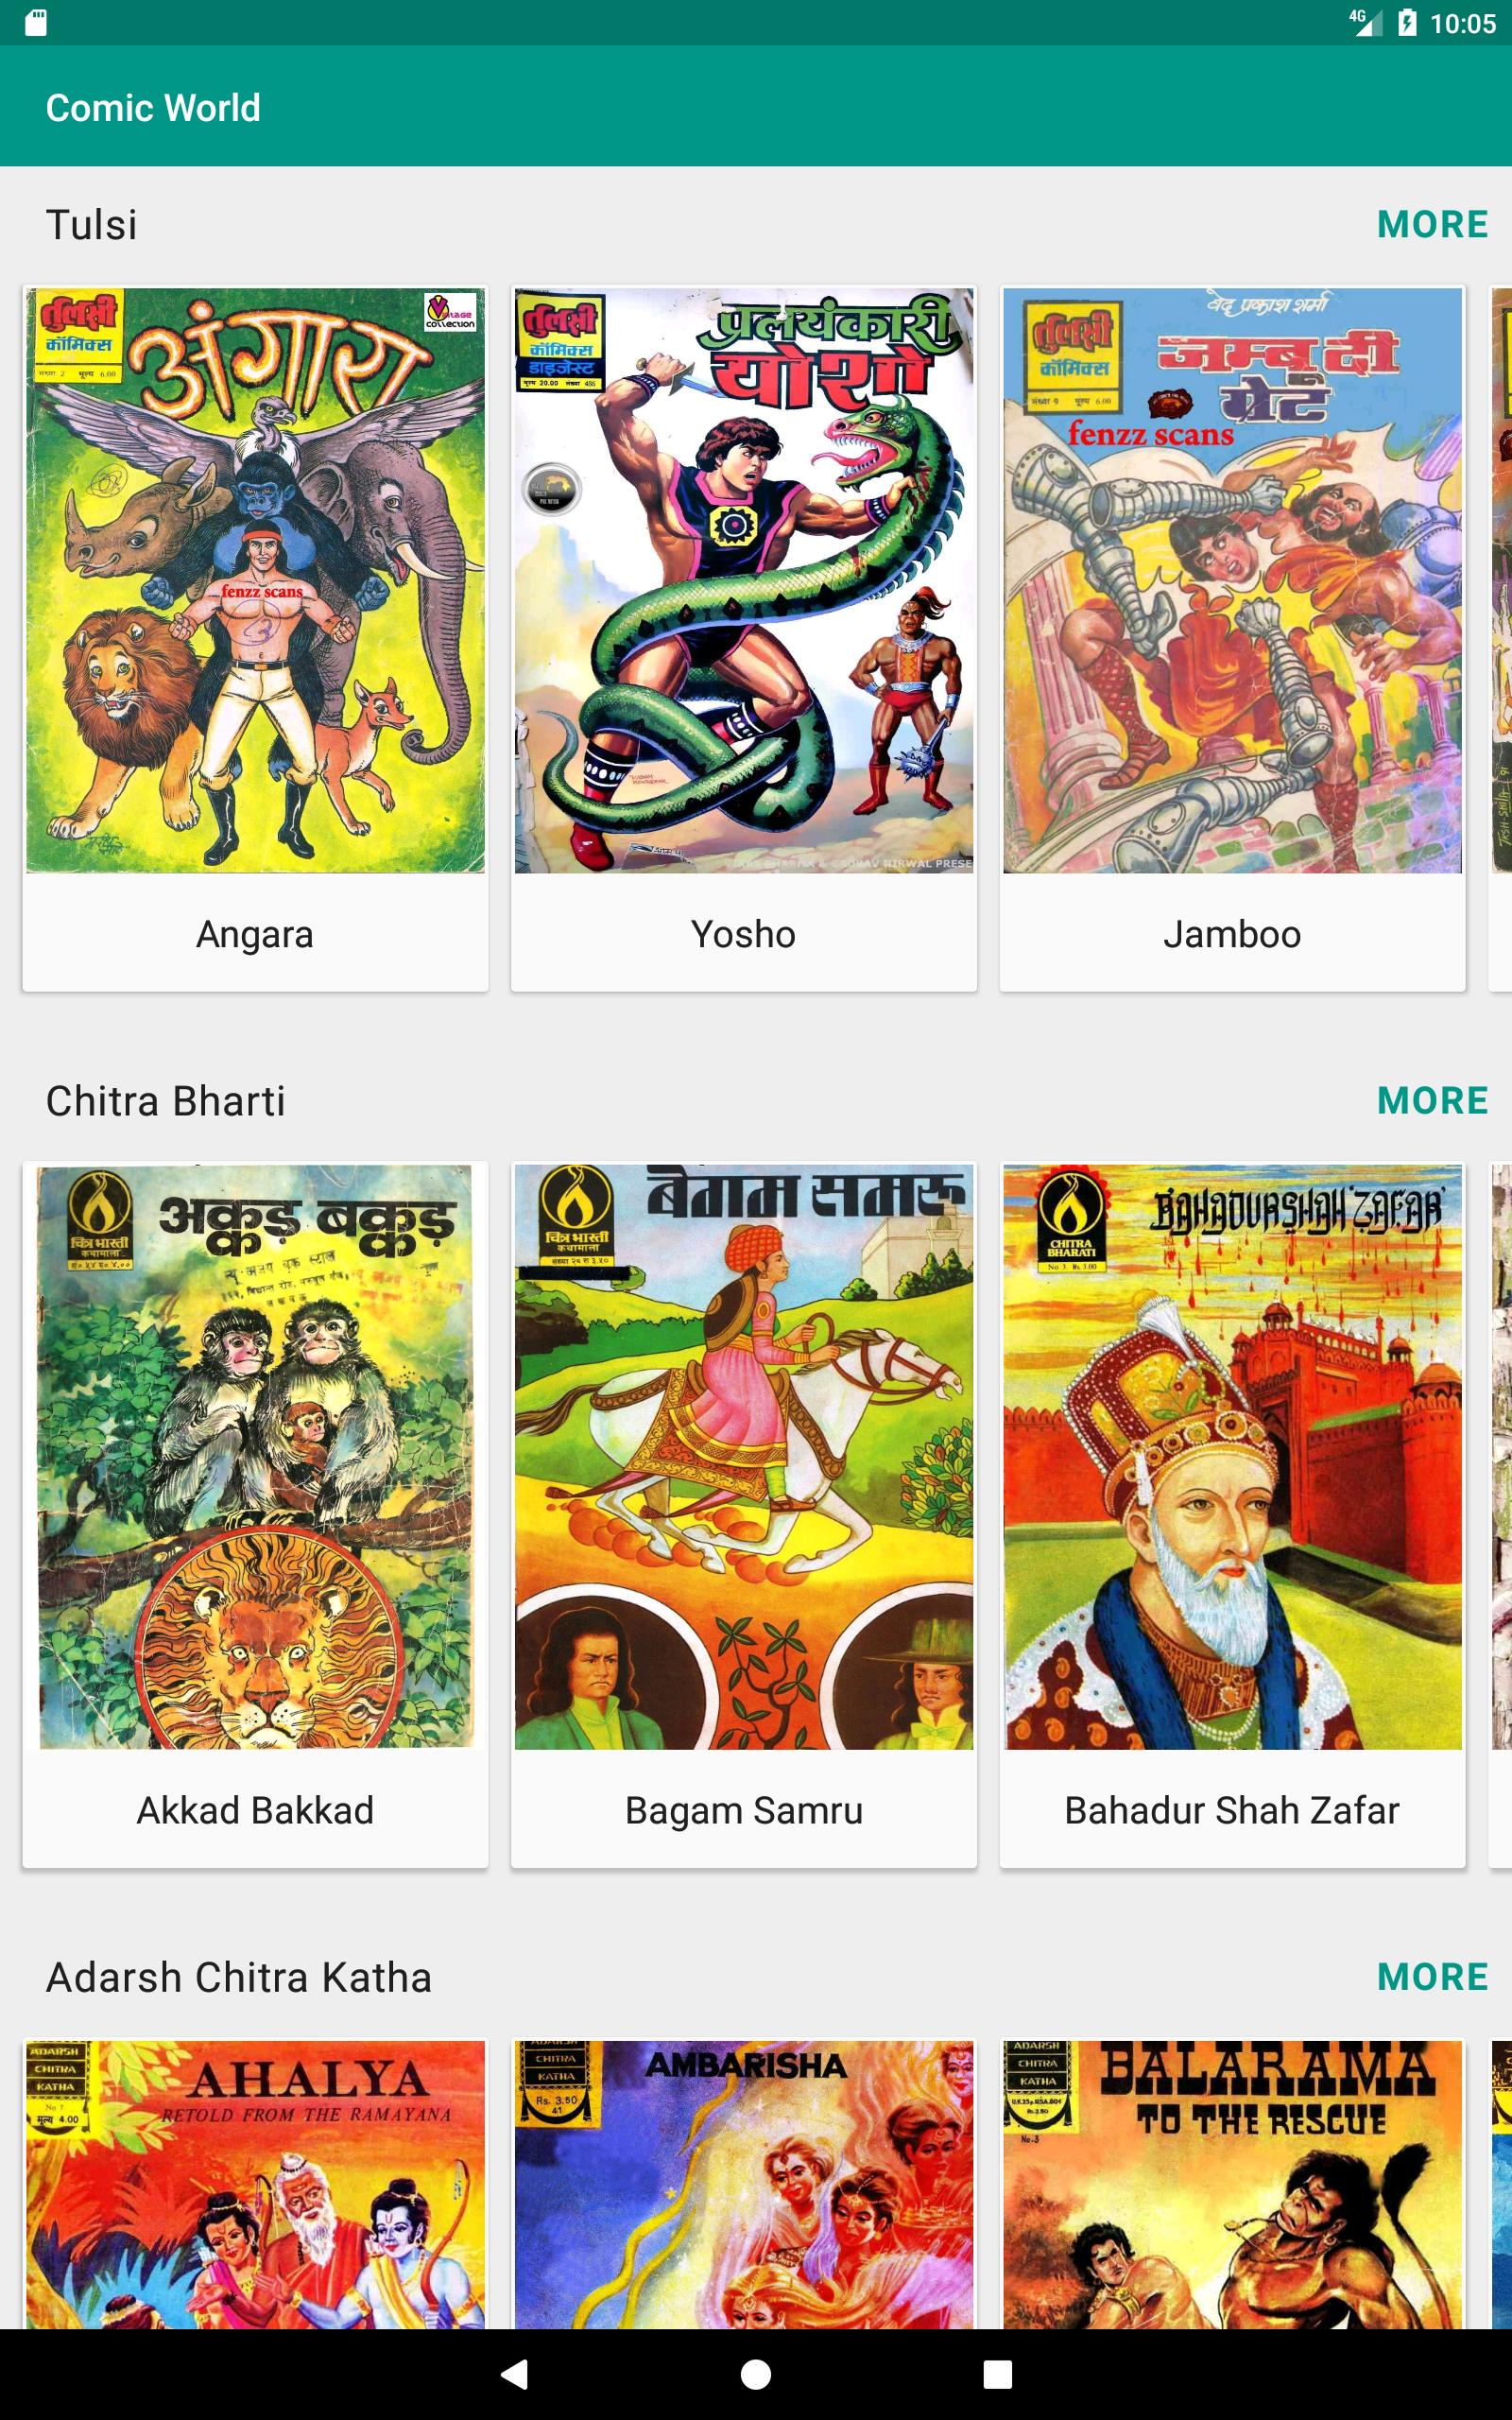 Comic World (Hindi) for Android - APK Download